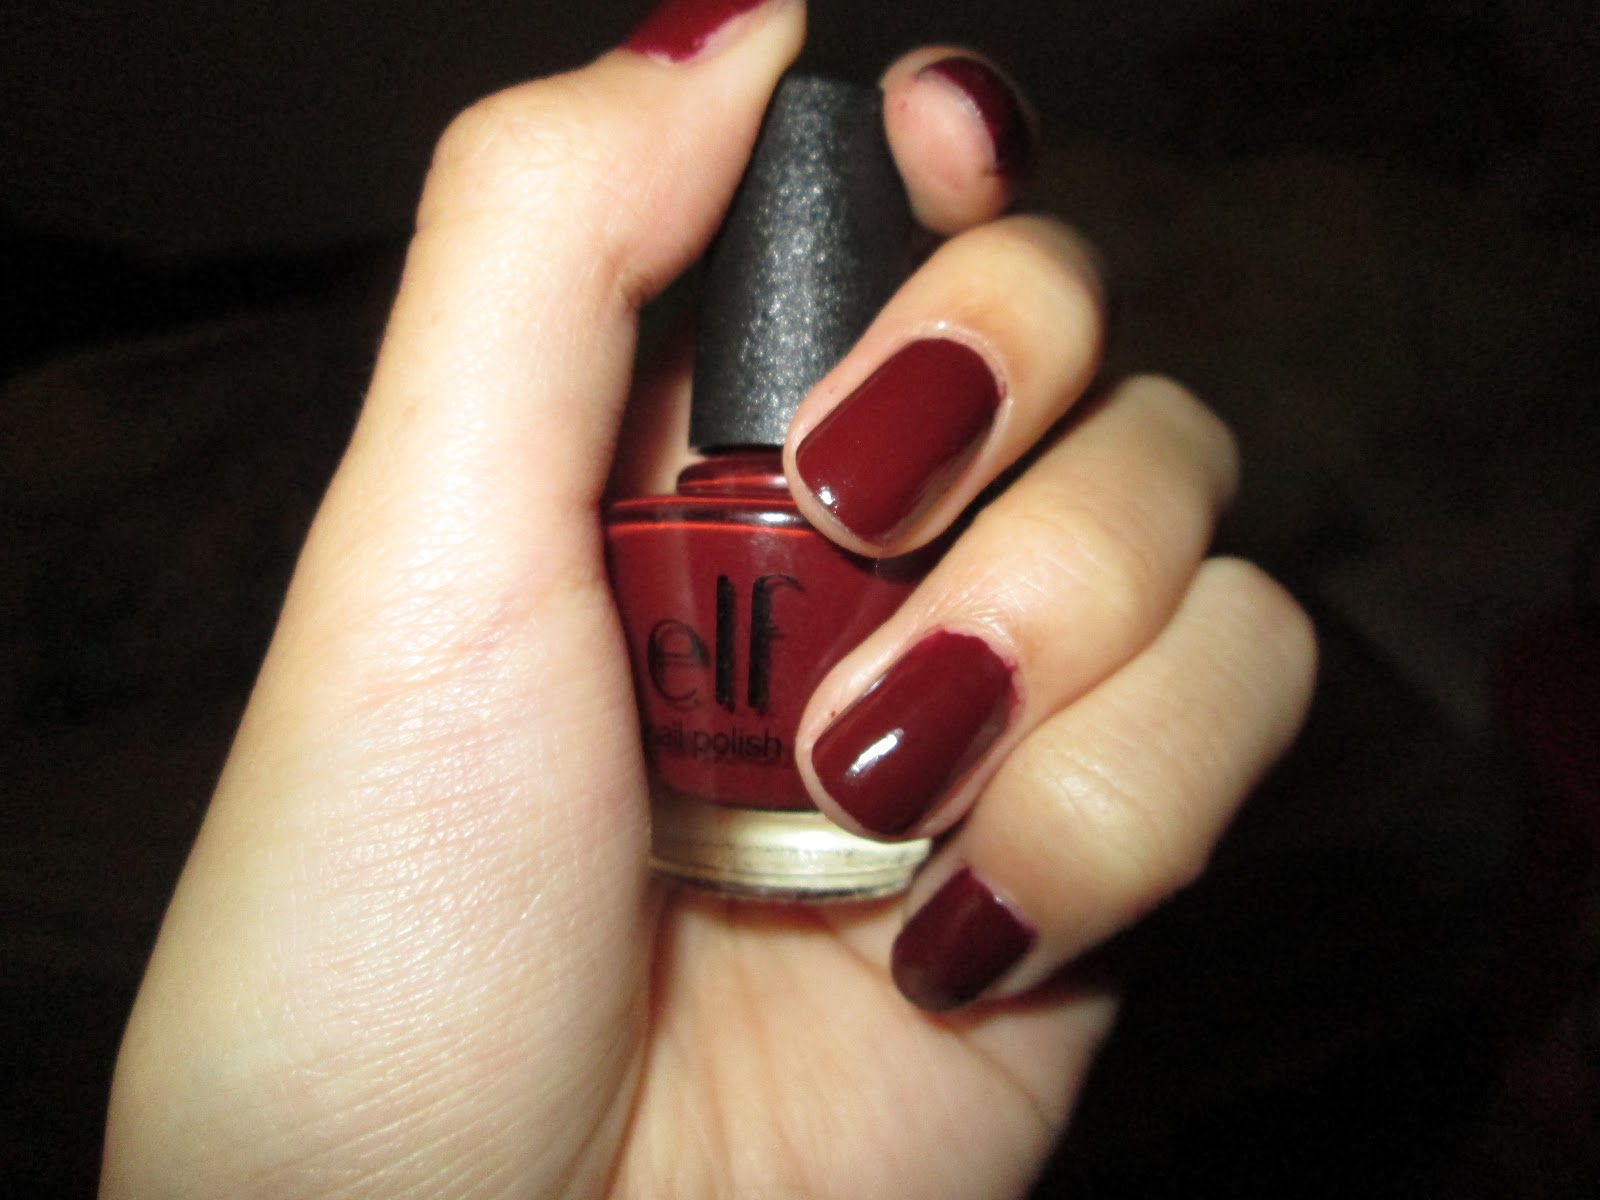 E.L.F. Nail Polish in Dark Red